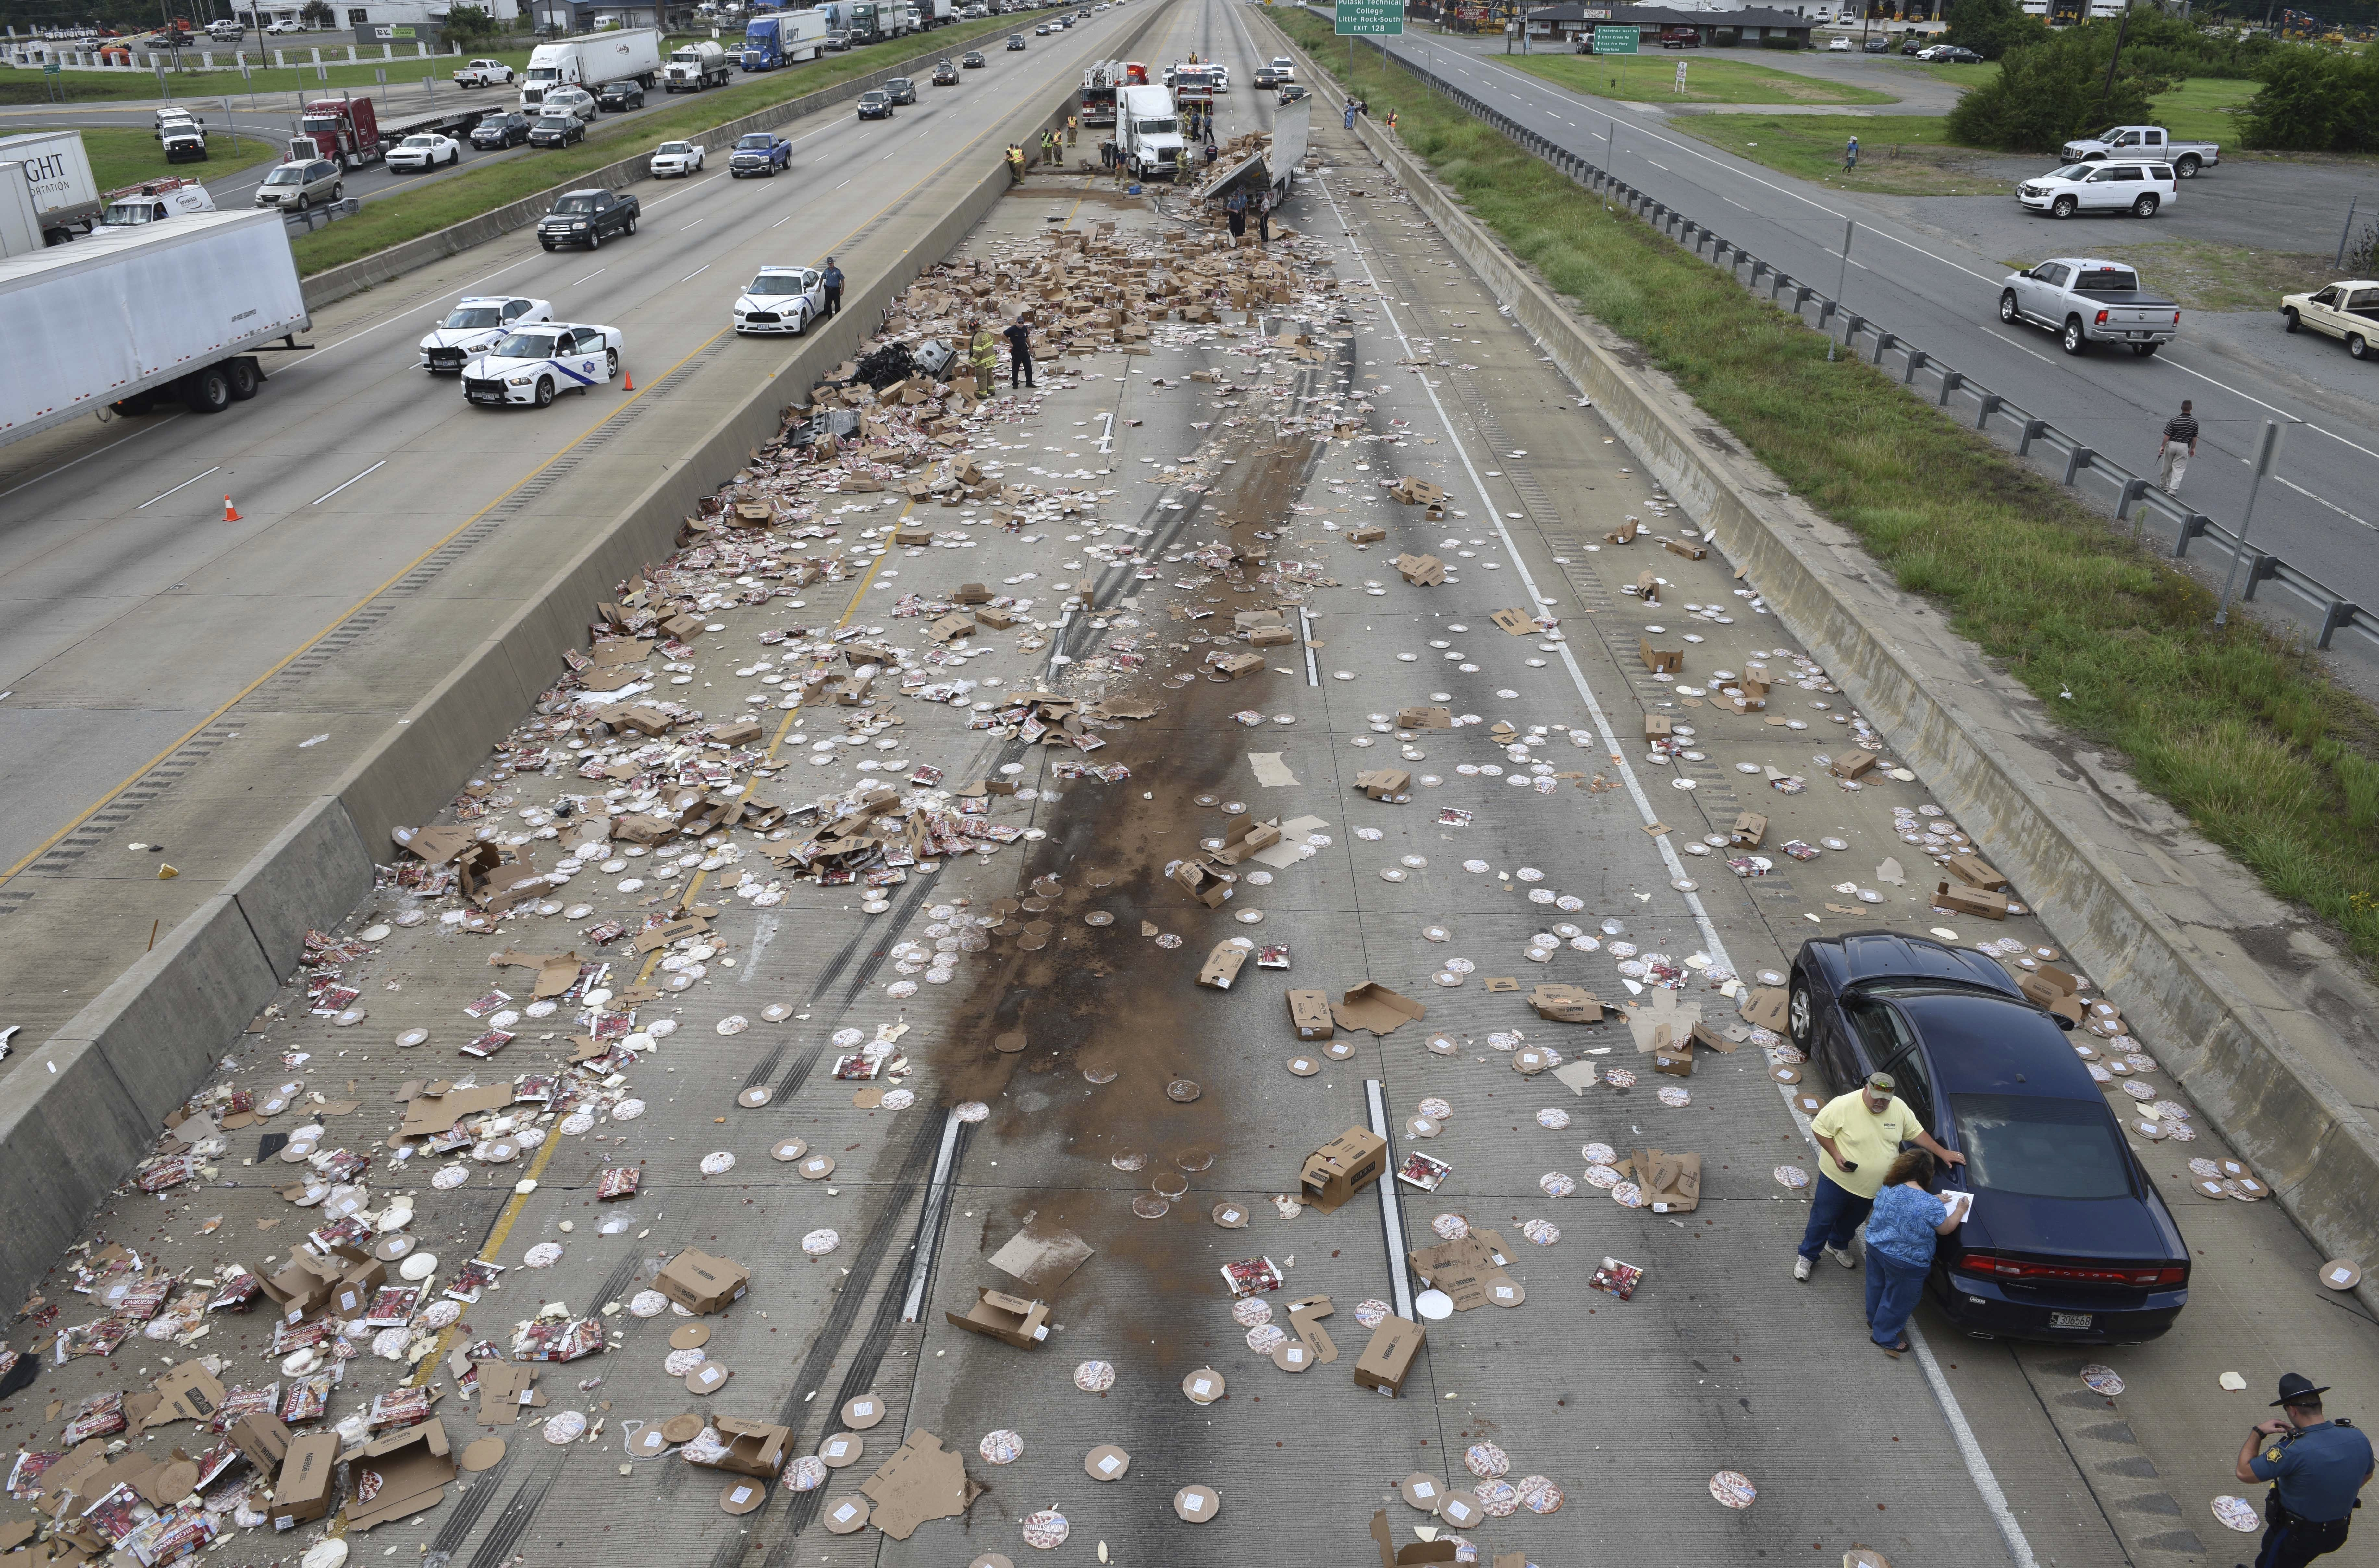 This Wednesday, Aug. 9, 2017, photo provided by the Arkansas Department of Transportation shows Arkansas highway Interstate 30, a cross-country route that was shut down in both directions for a time Wednesday, after an 18-wheeler was sliced open during an crash and spilled frozen pizzas across the road south of Little Rock, Ark.